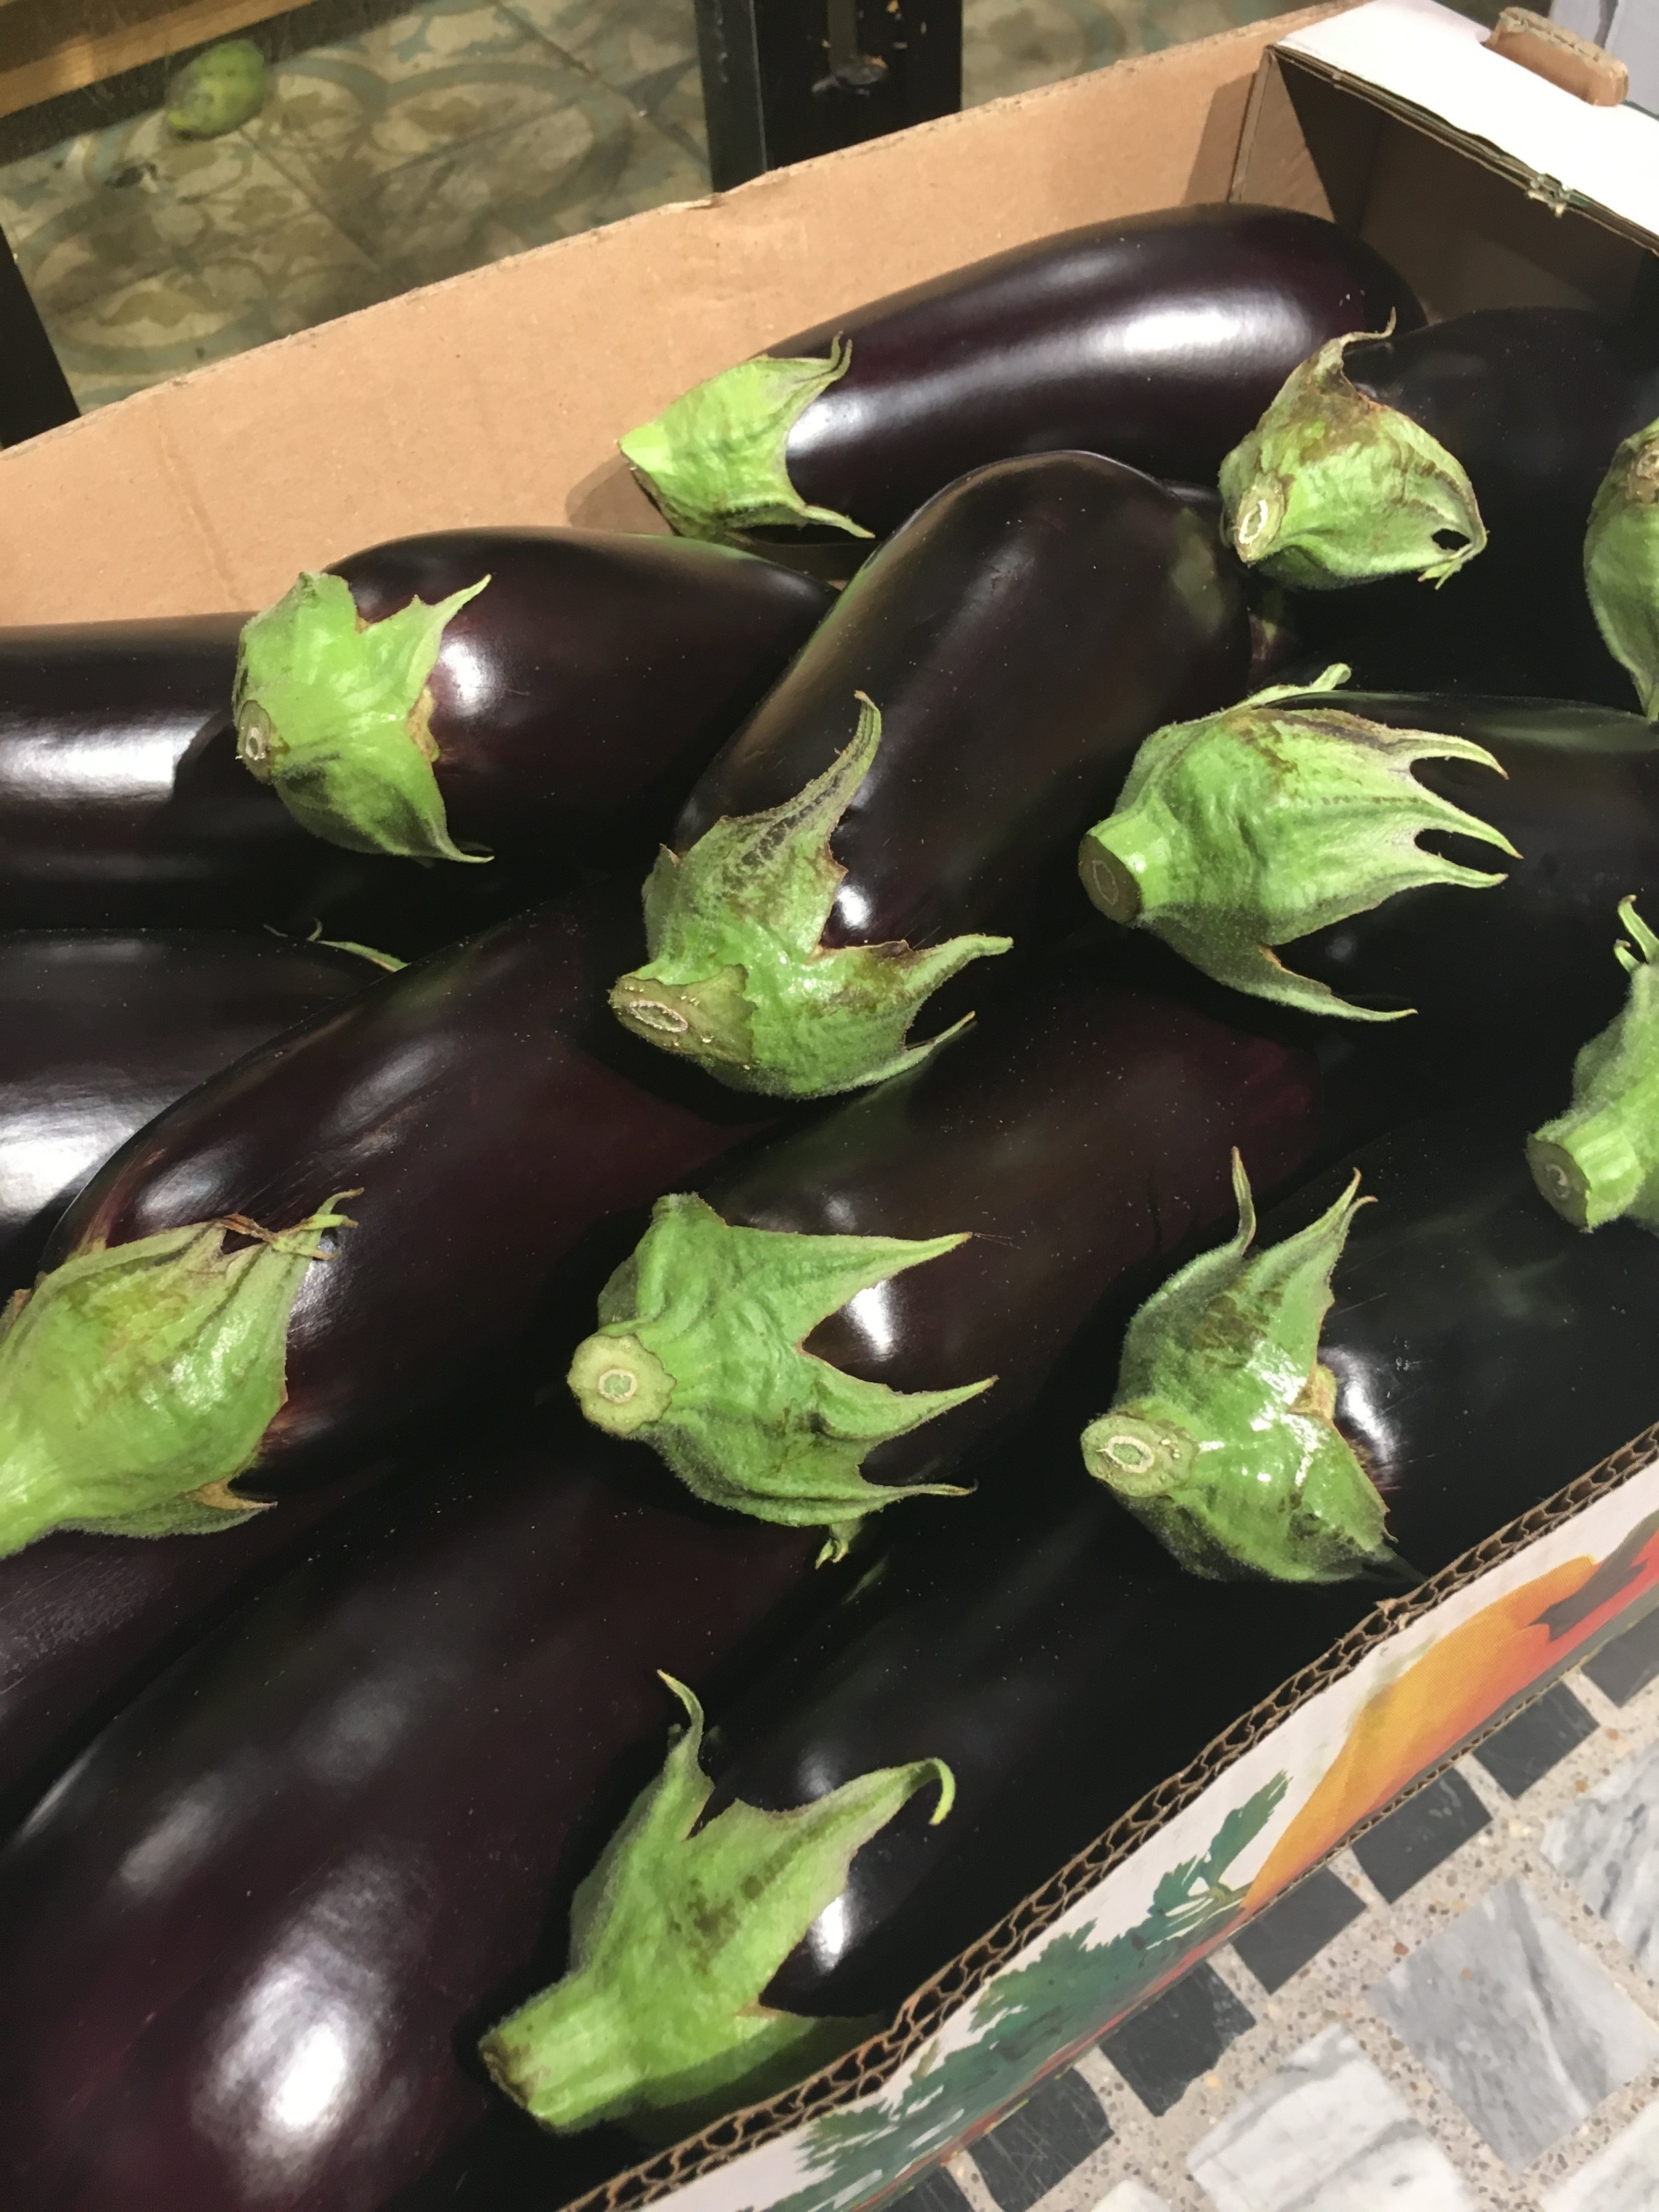 This is what I call fresh! Eggplants at the market in my hometown, Givat Olga